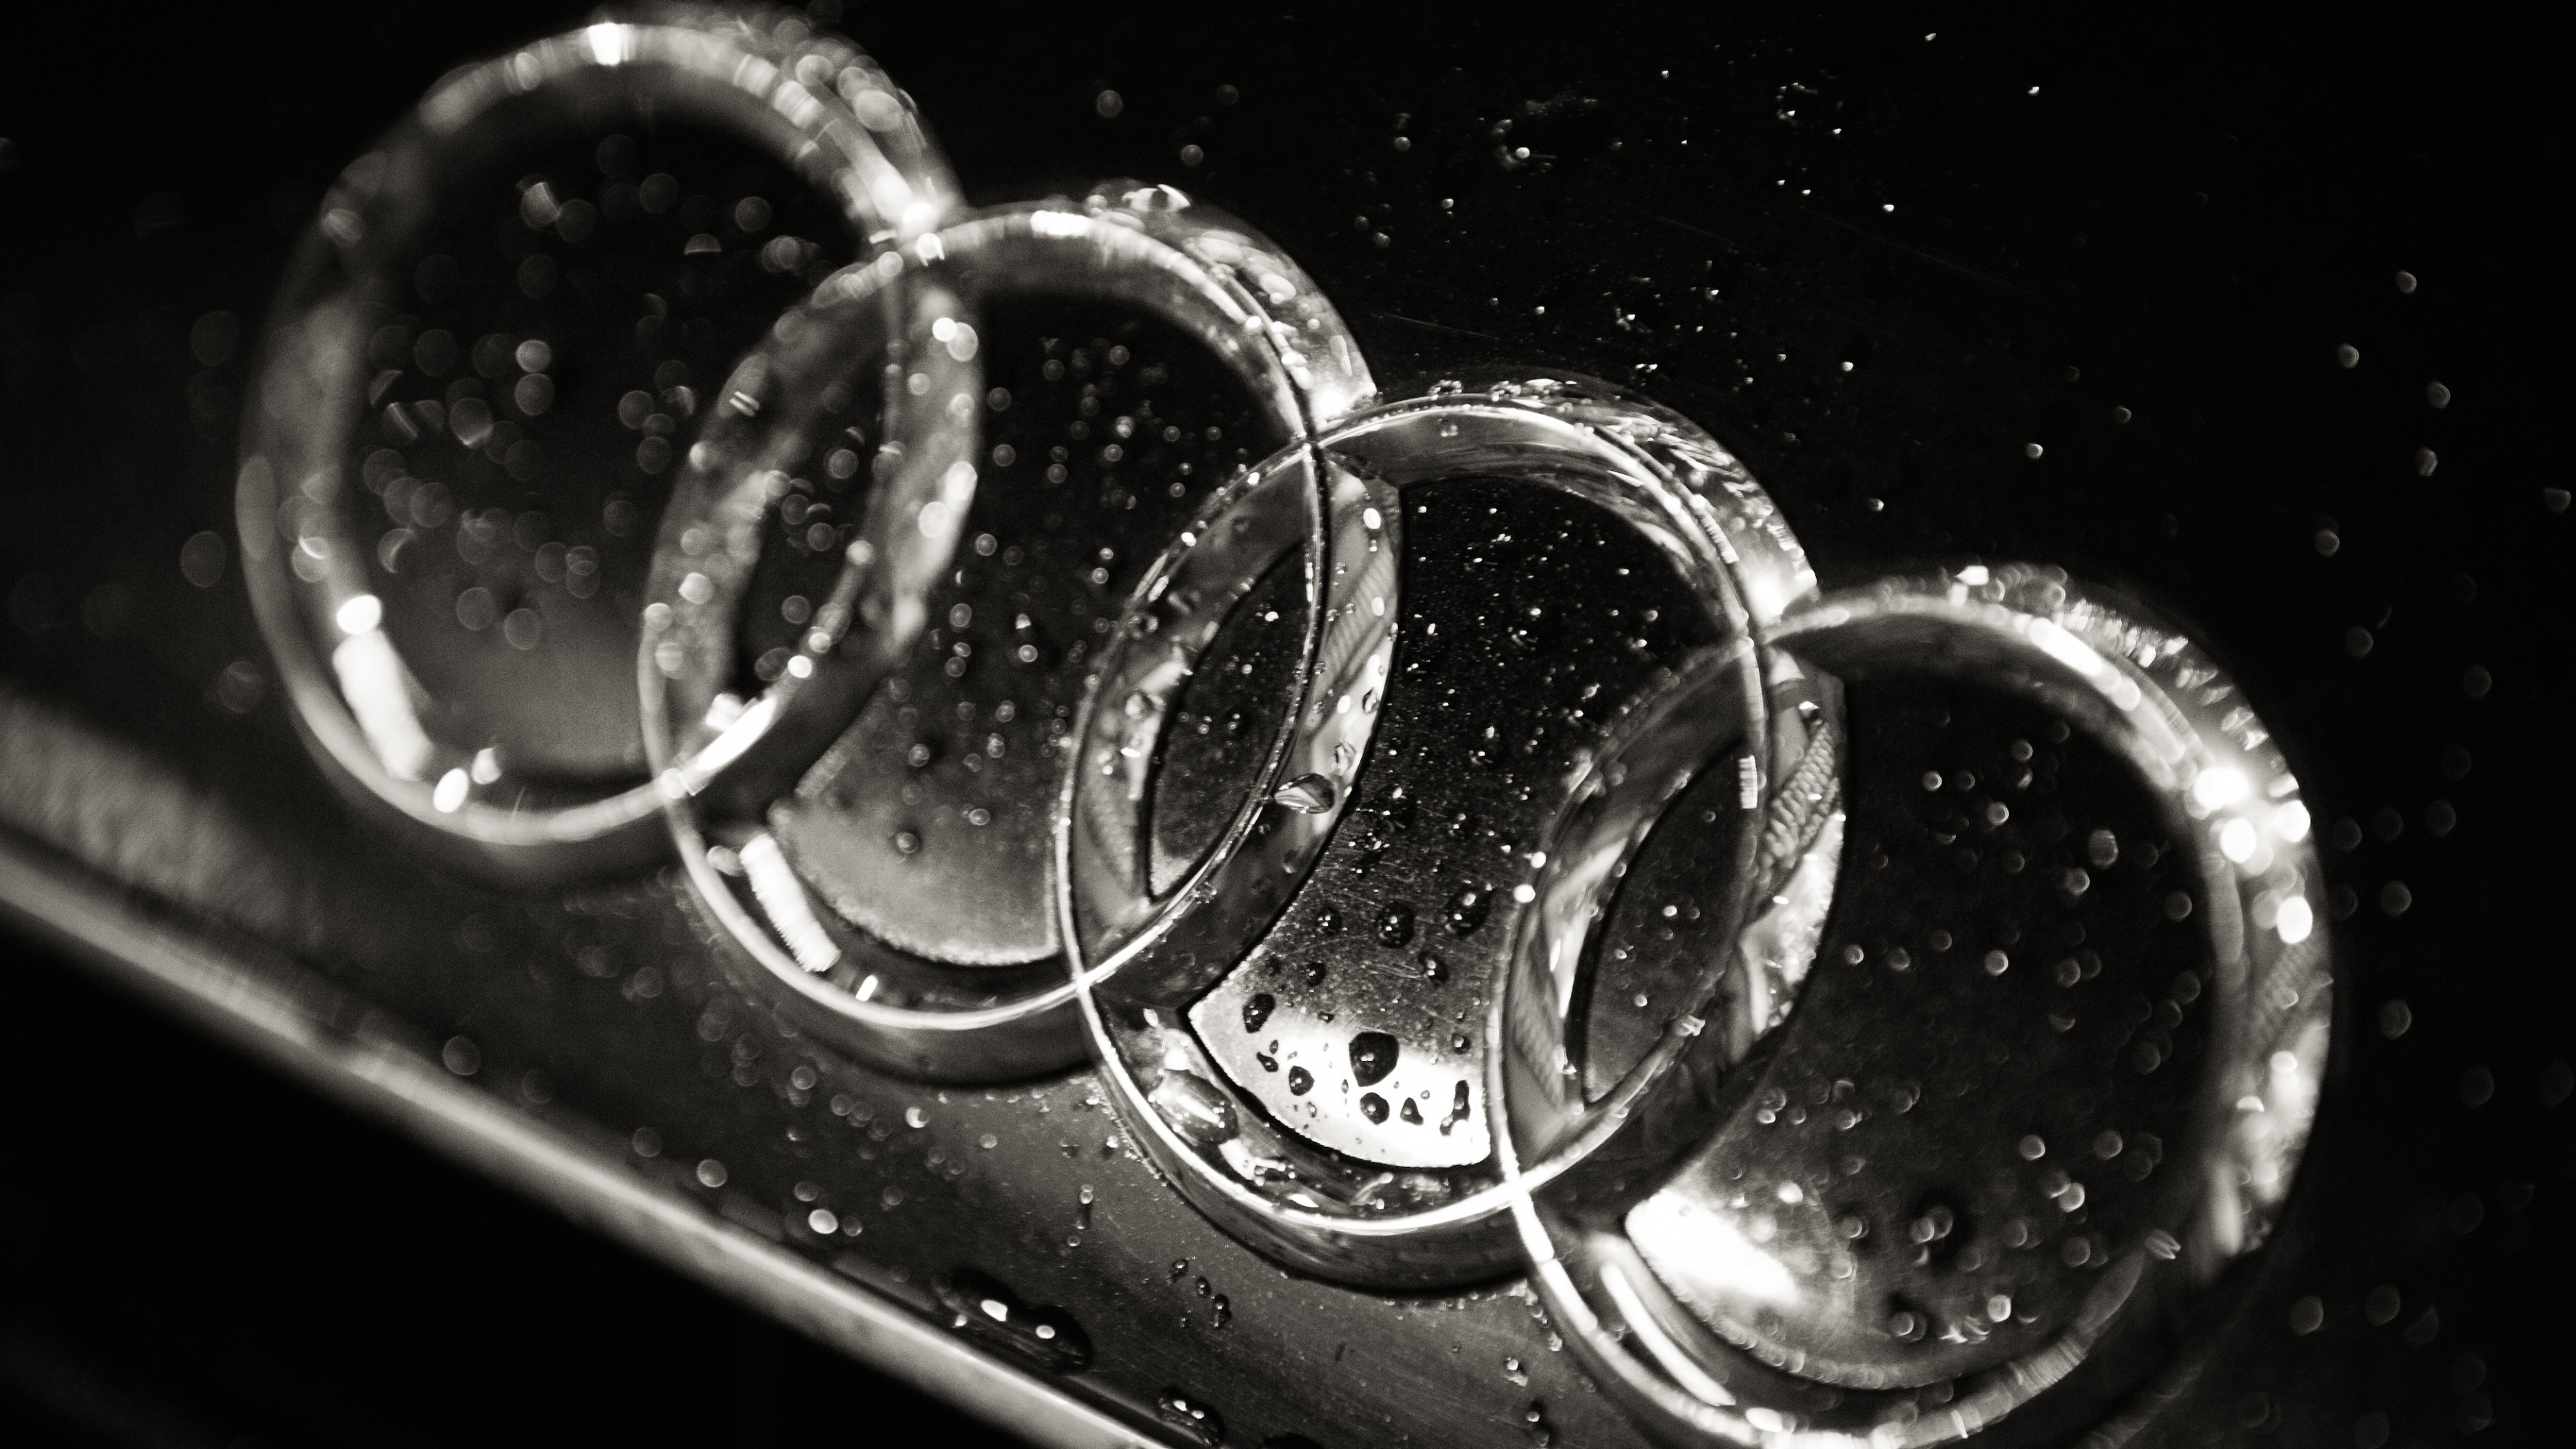 Audi Car HD Wallpapers, images, photos and pictures at http://www ...